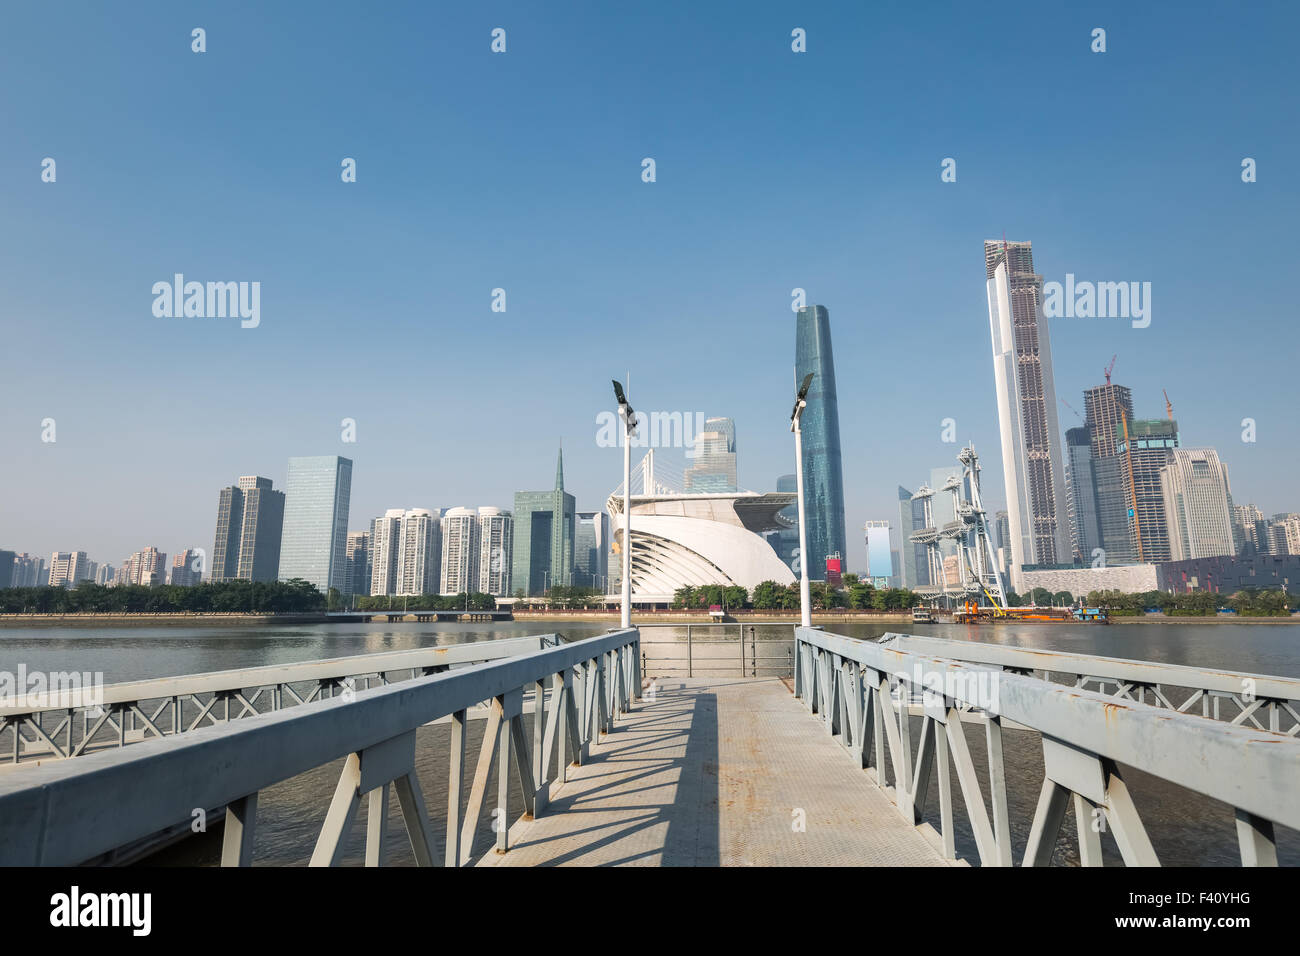 pearl river and modern building - Stock Image